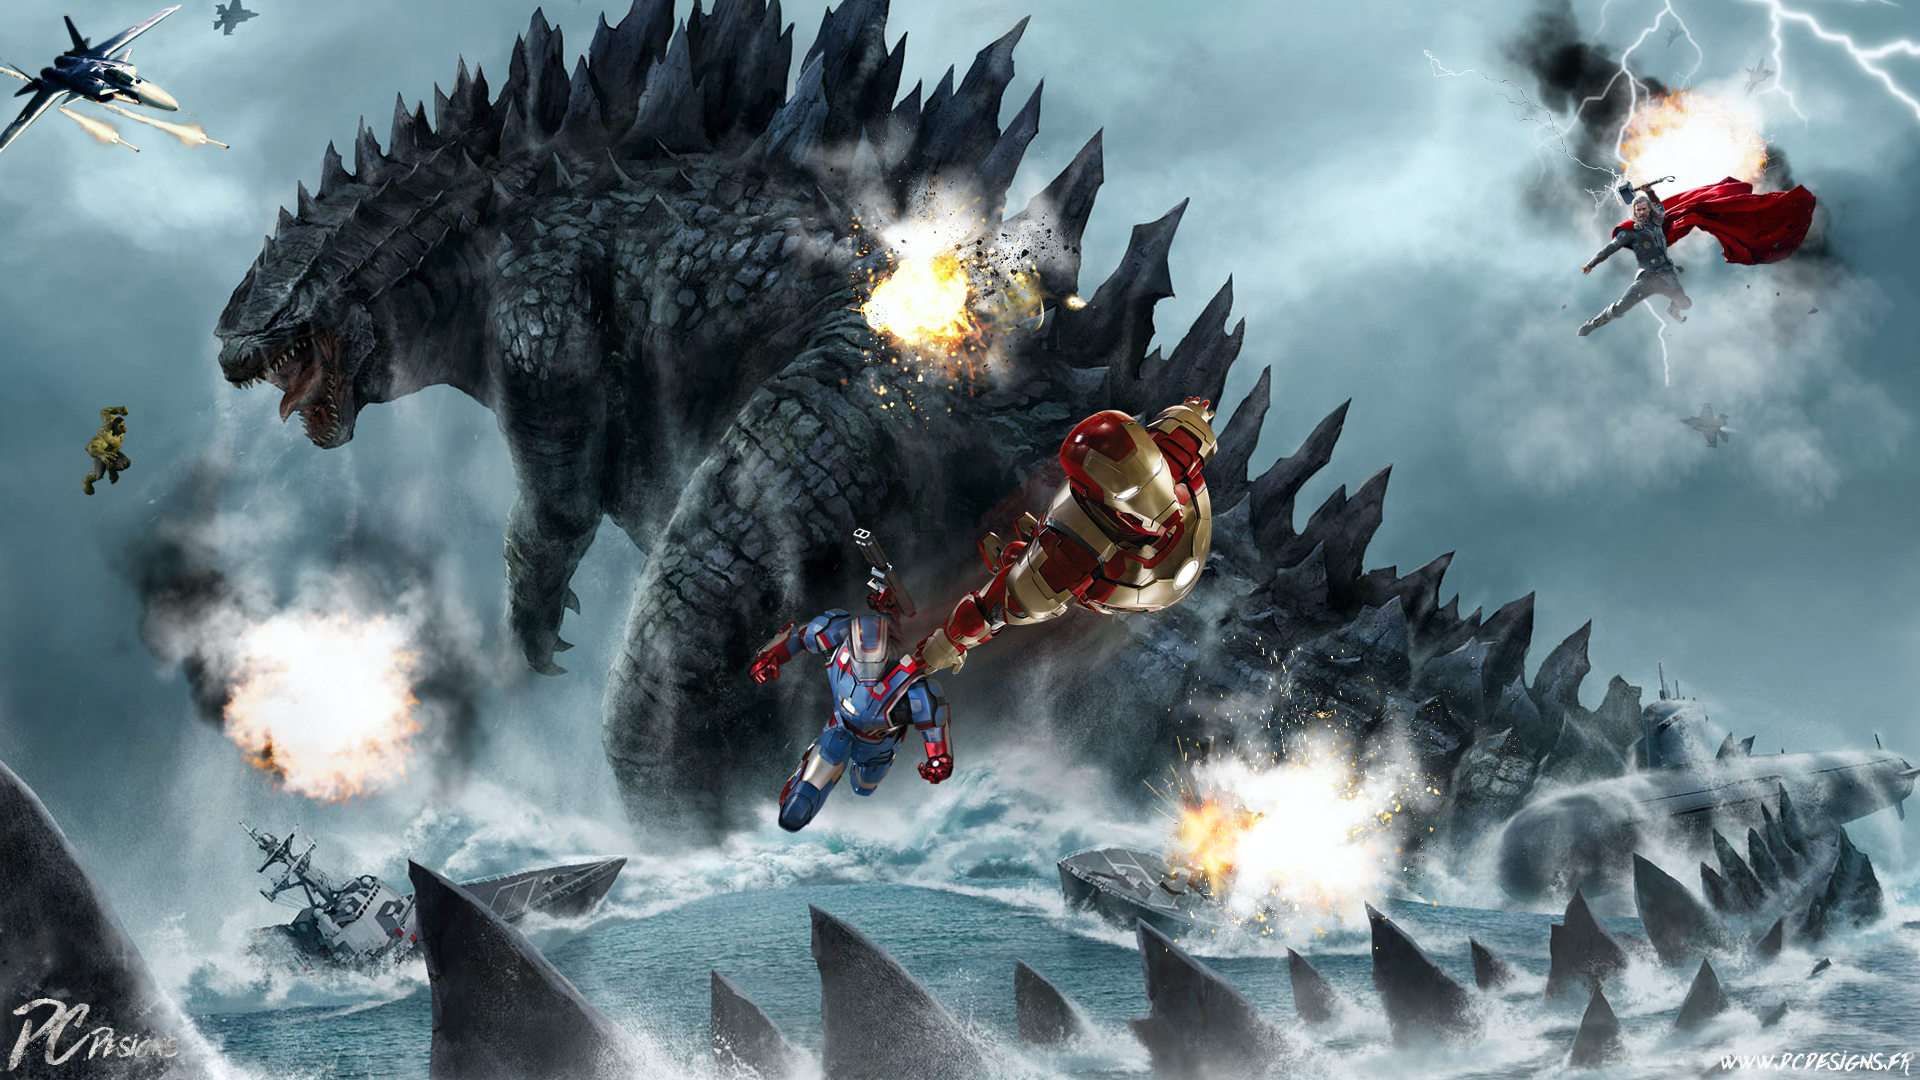 Godzilla Vs Avengers Hd Wallpaper Background Image 1920x1080